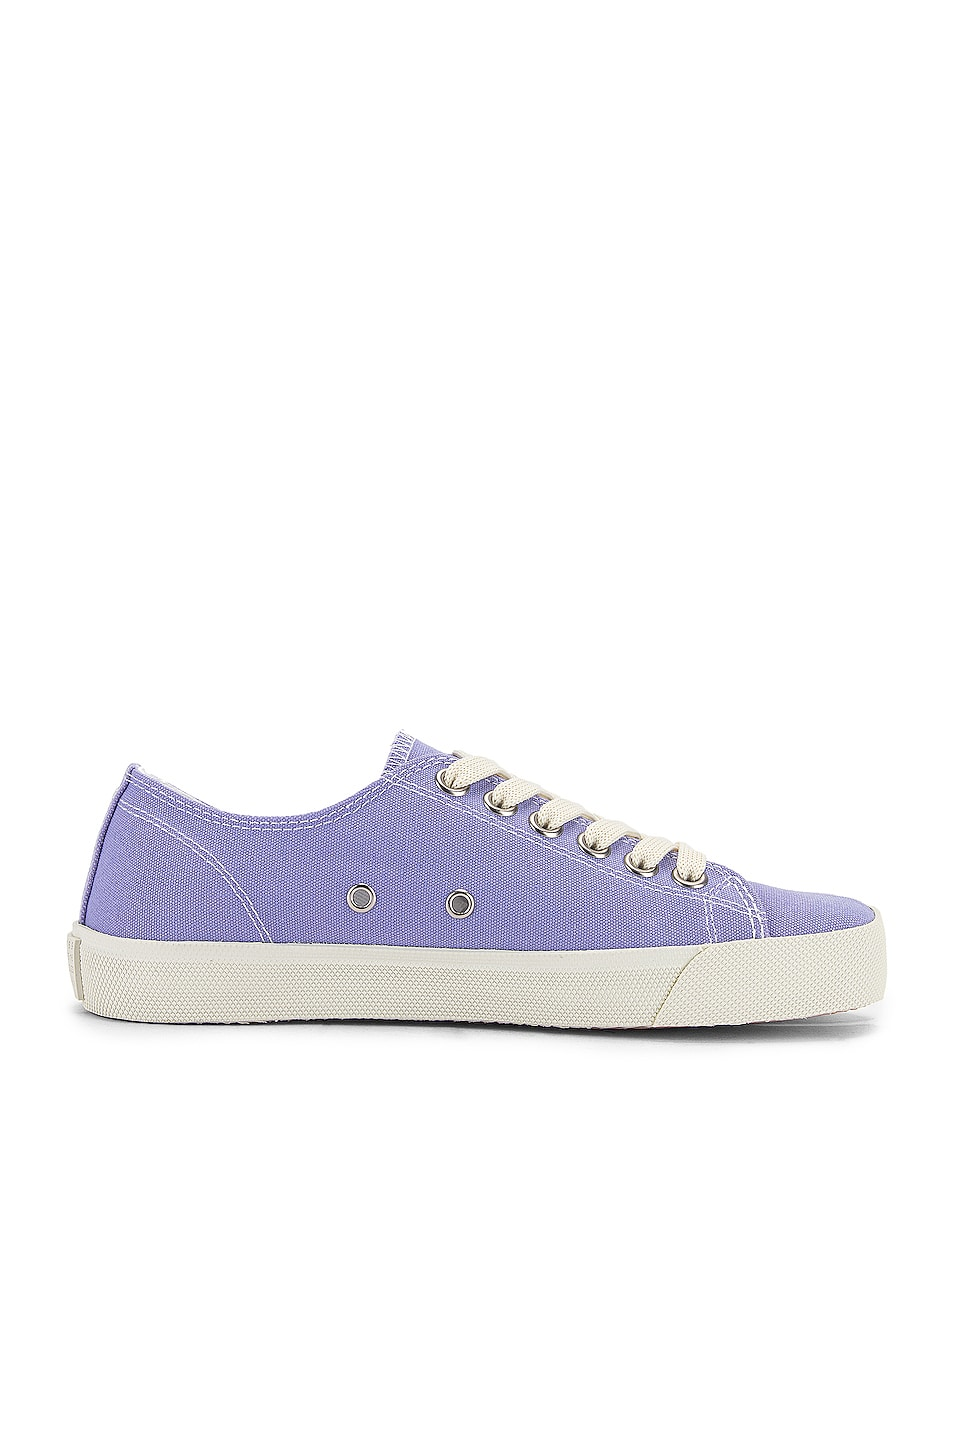 Image 7 of Maison Margiela Tabi Low Top Canvas Sneakers in Thistle